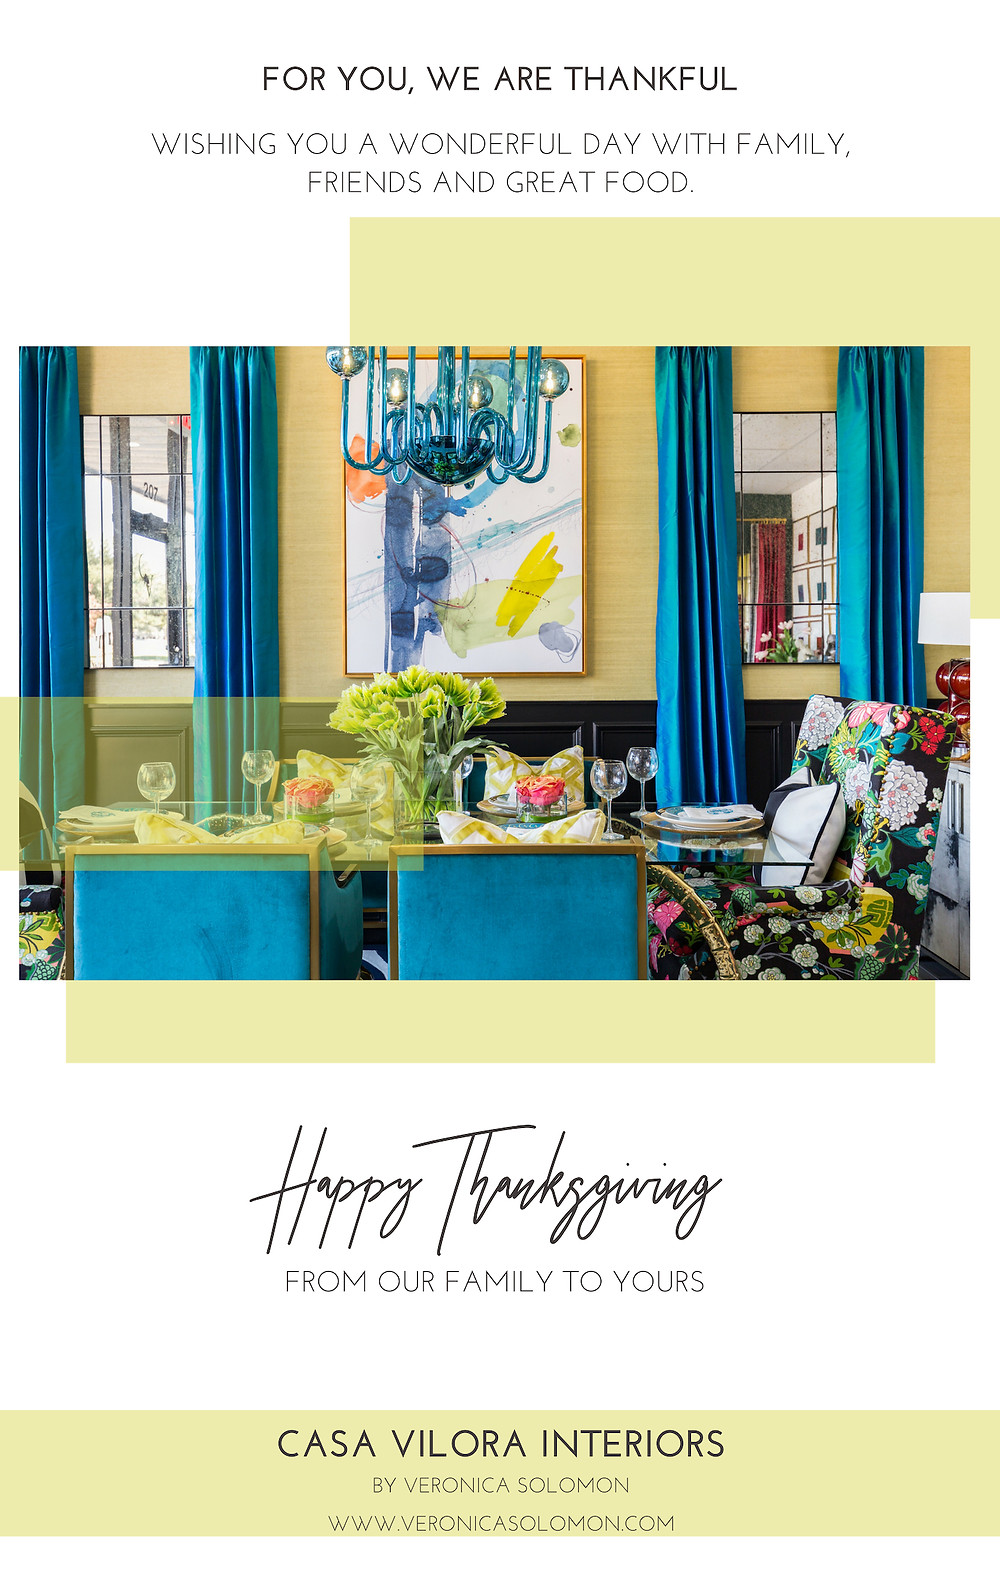 Happy Thanksgiving From Casa Vilora Interiors